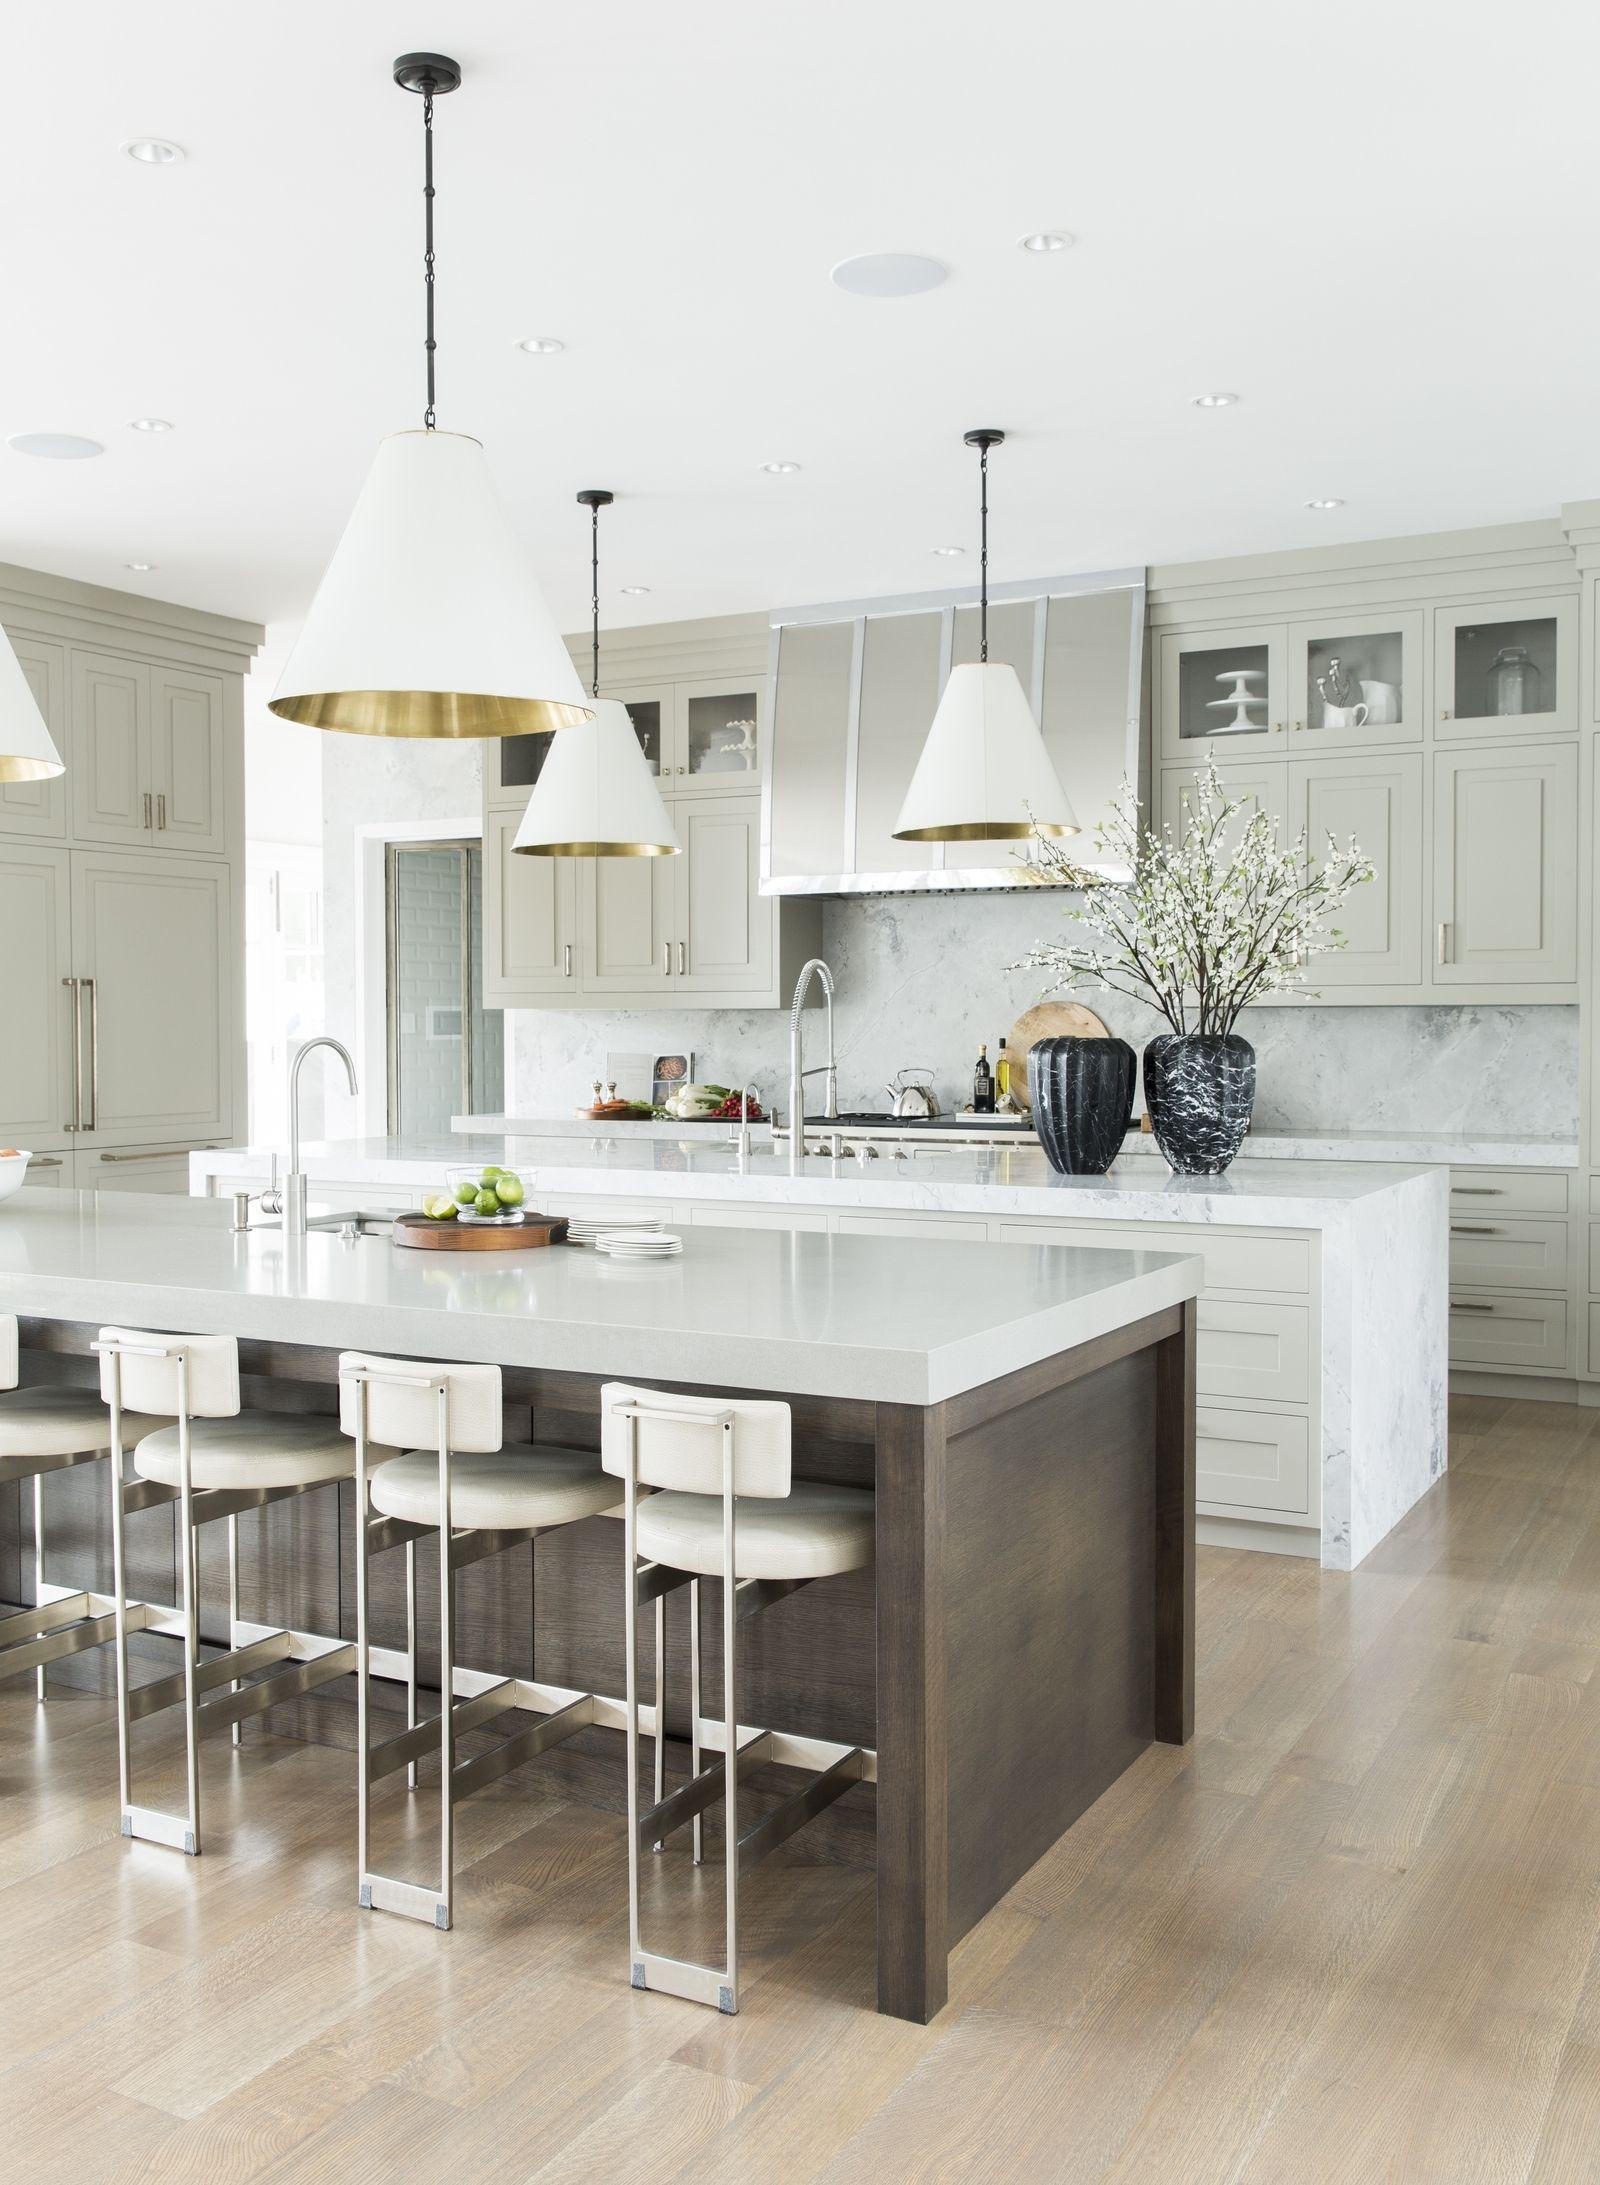 Contemporary Dream Kitchens tour a coastal contemporary dream home in the unlikeliest locale